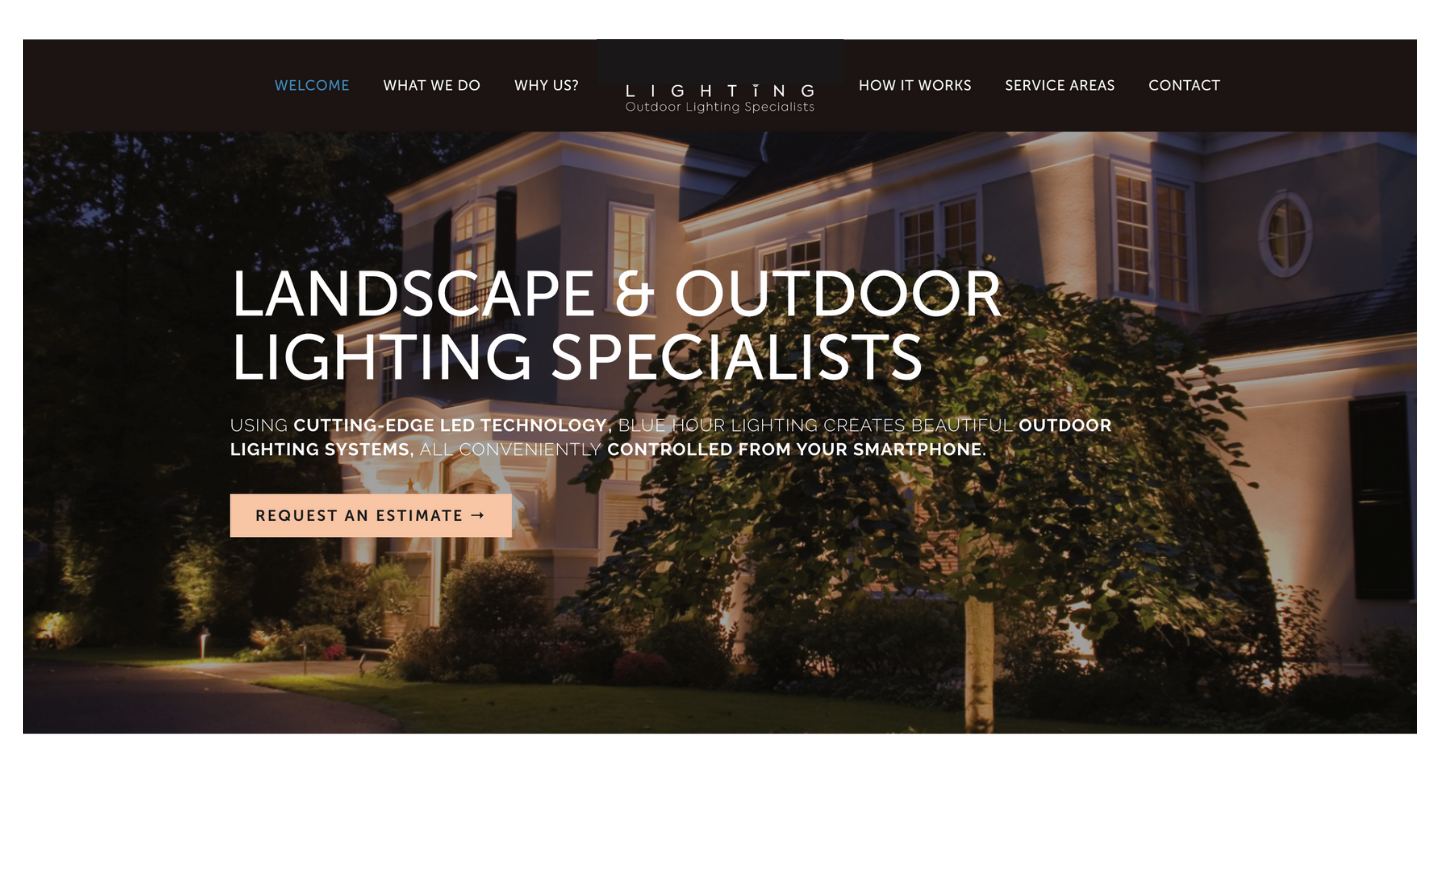 Facebook Ads For Ny Landscape Lighting